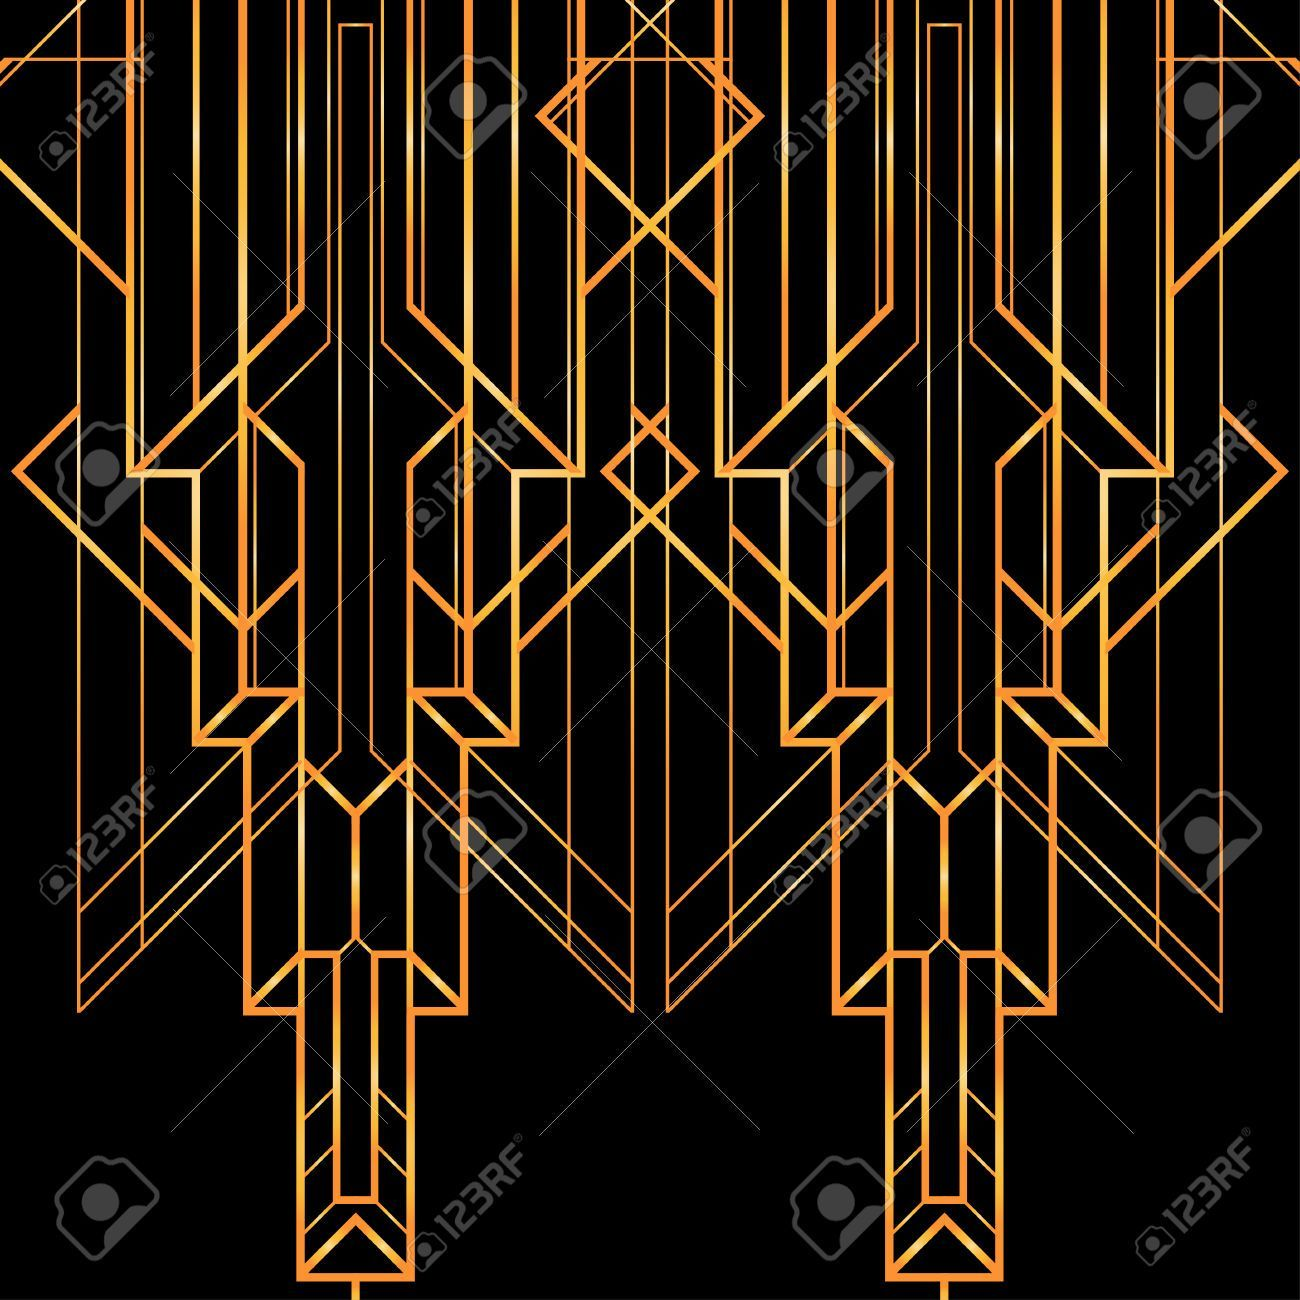 Art Deco Geometric Pattern 1920 S Style Royalty Free Cliparts